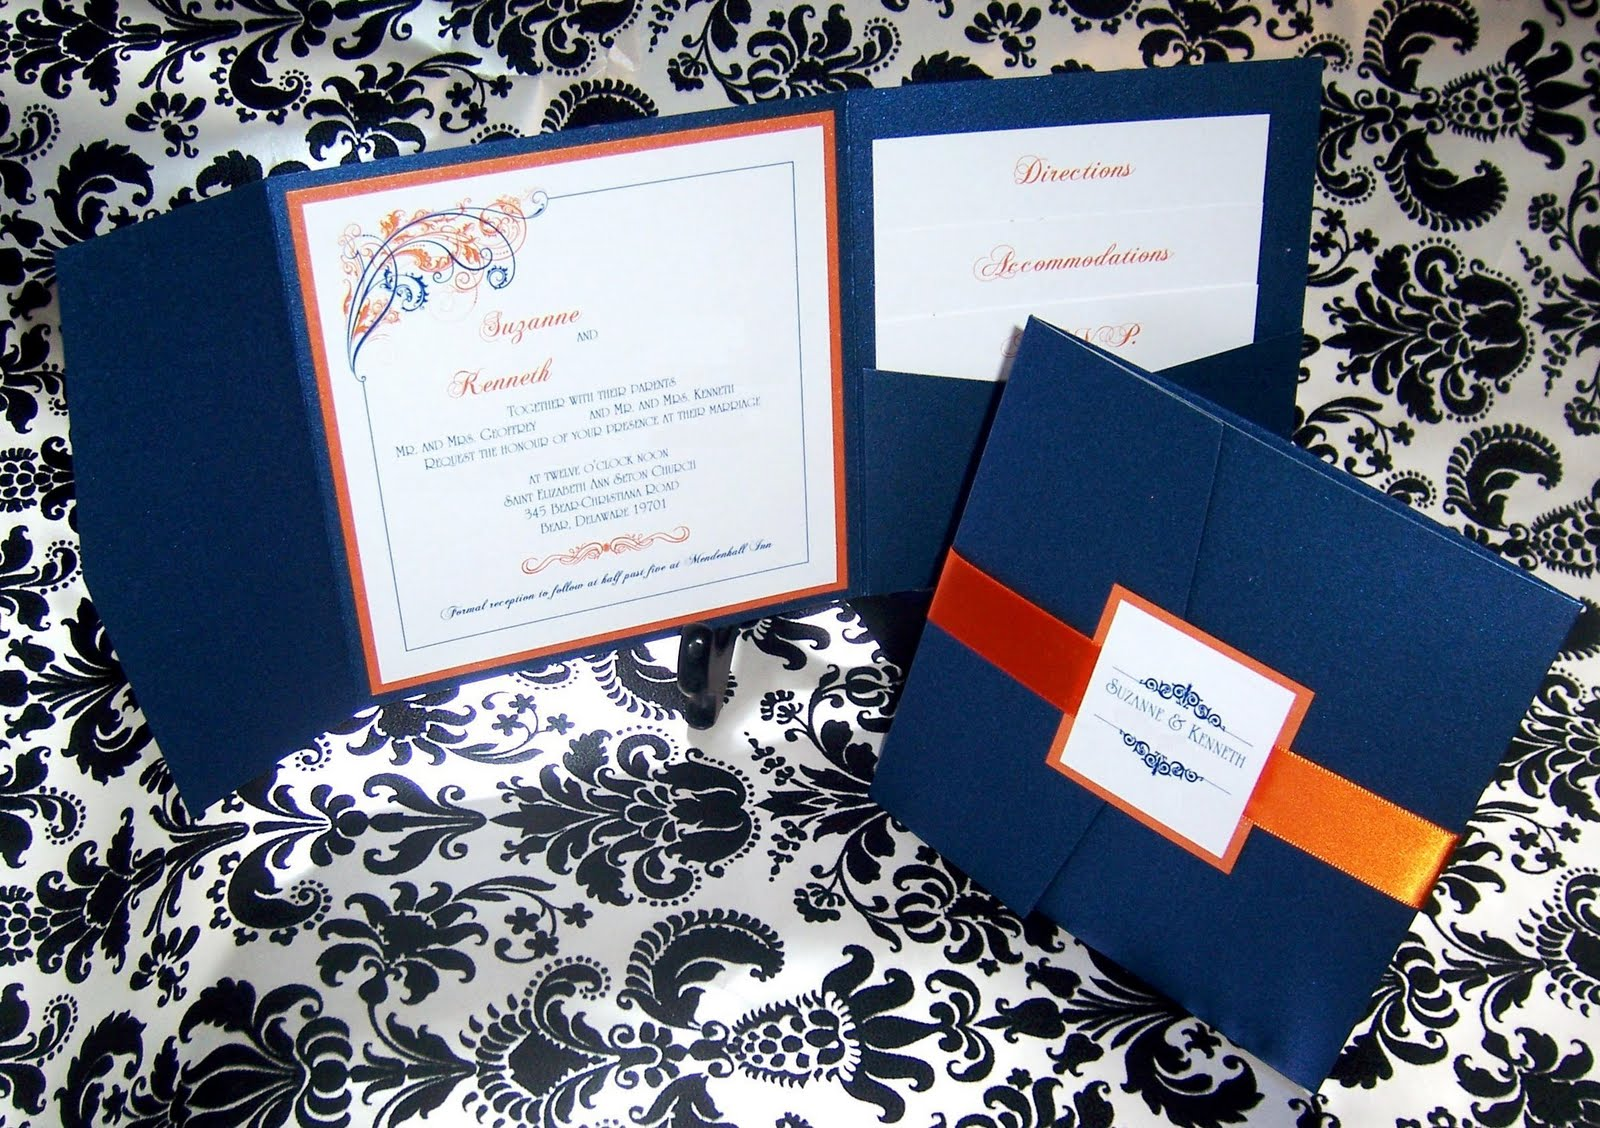 Suzanne And Kenneth S Choice Of Navy Blue Tangerine Invitations Is Truly Unique The Delicate Paisley Decal Vibrant Give These Invites A